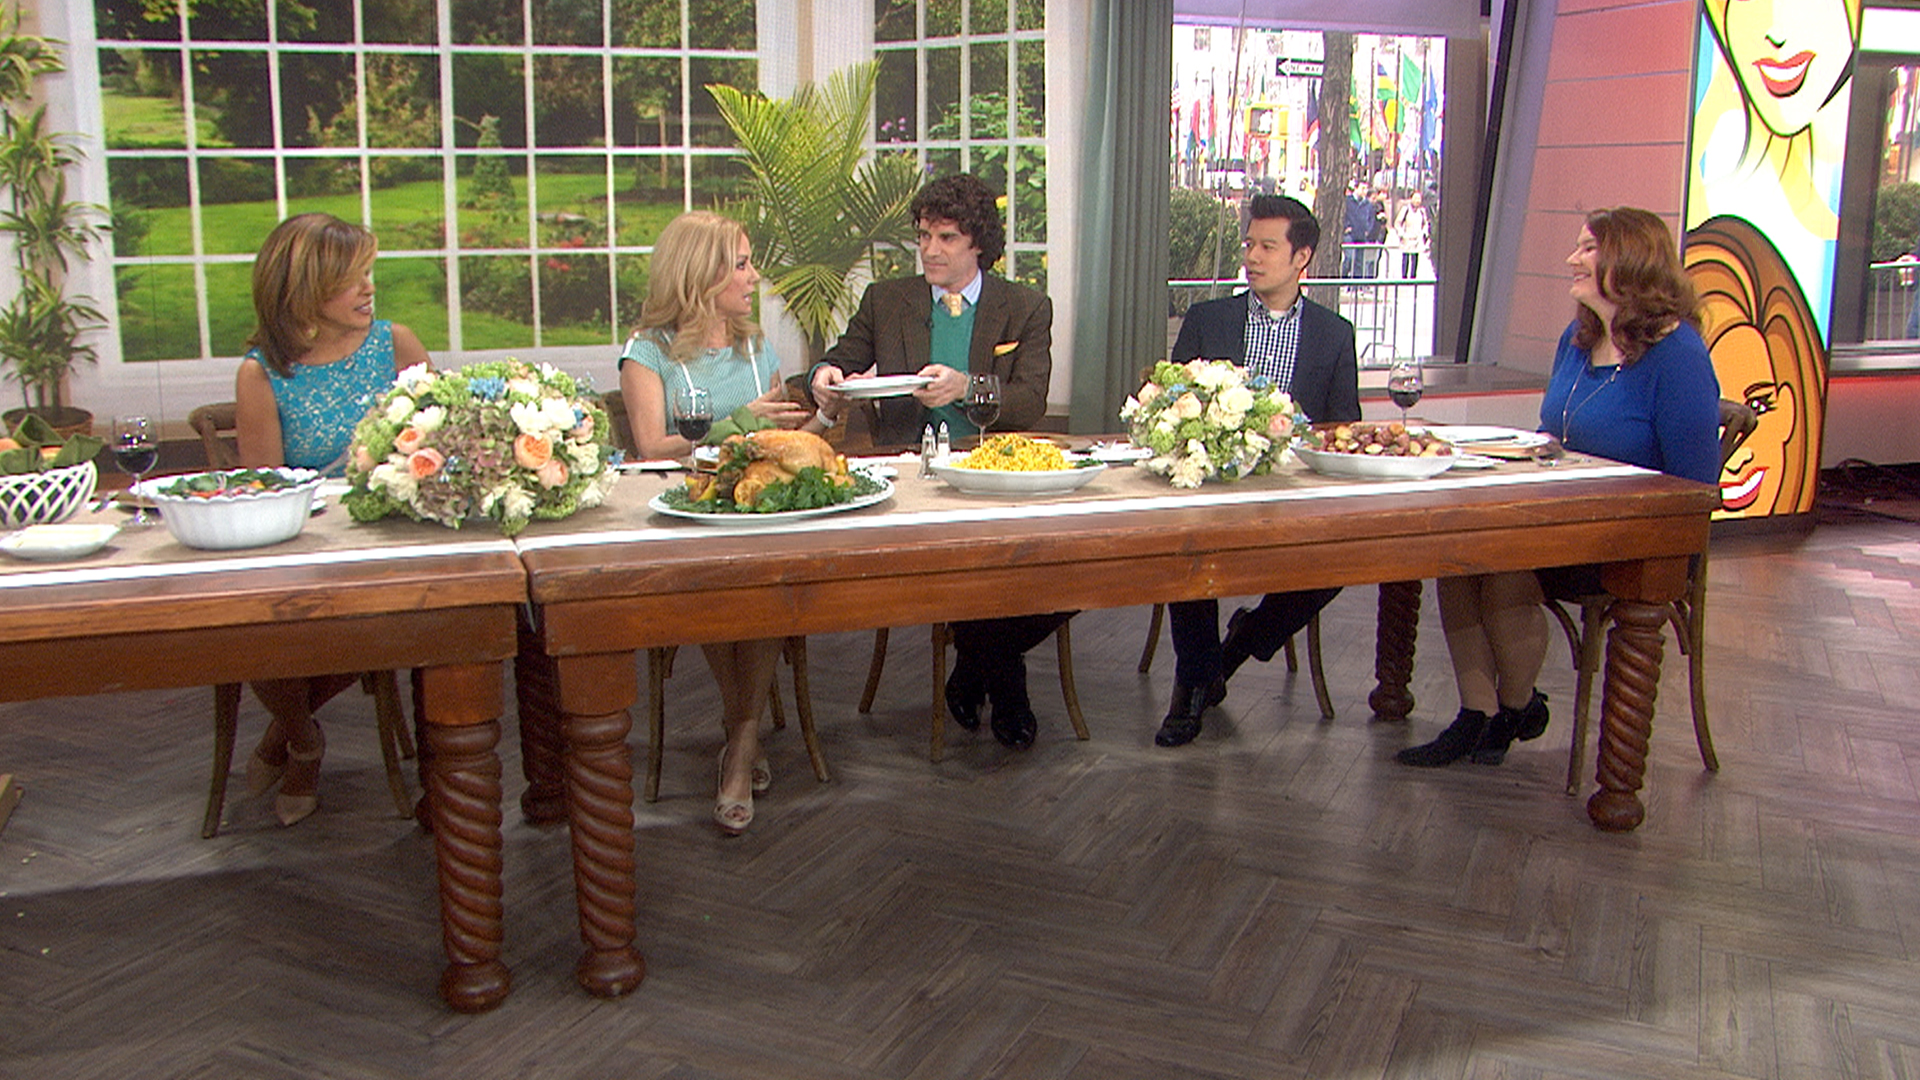 Tips for proper etiquette at Easter, Passover dinners